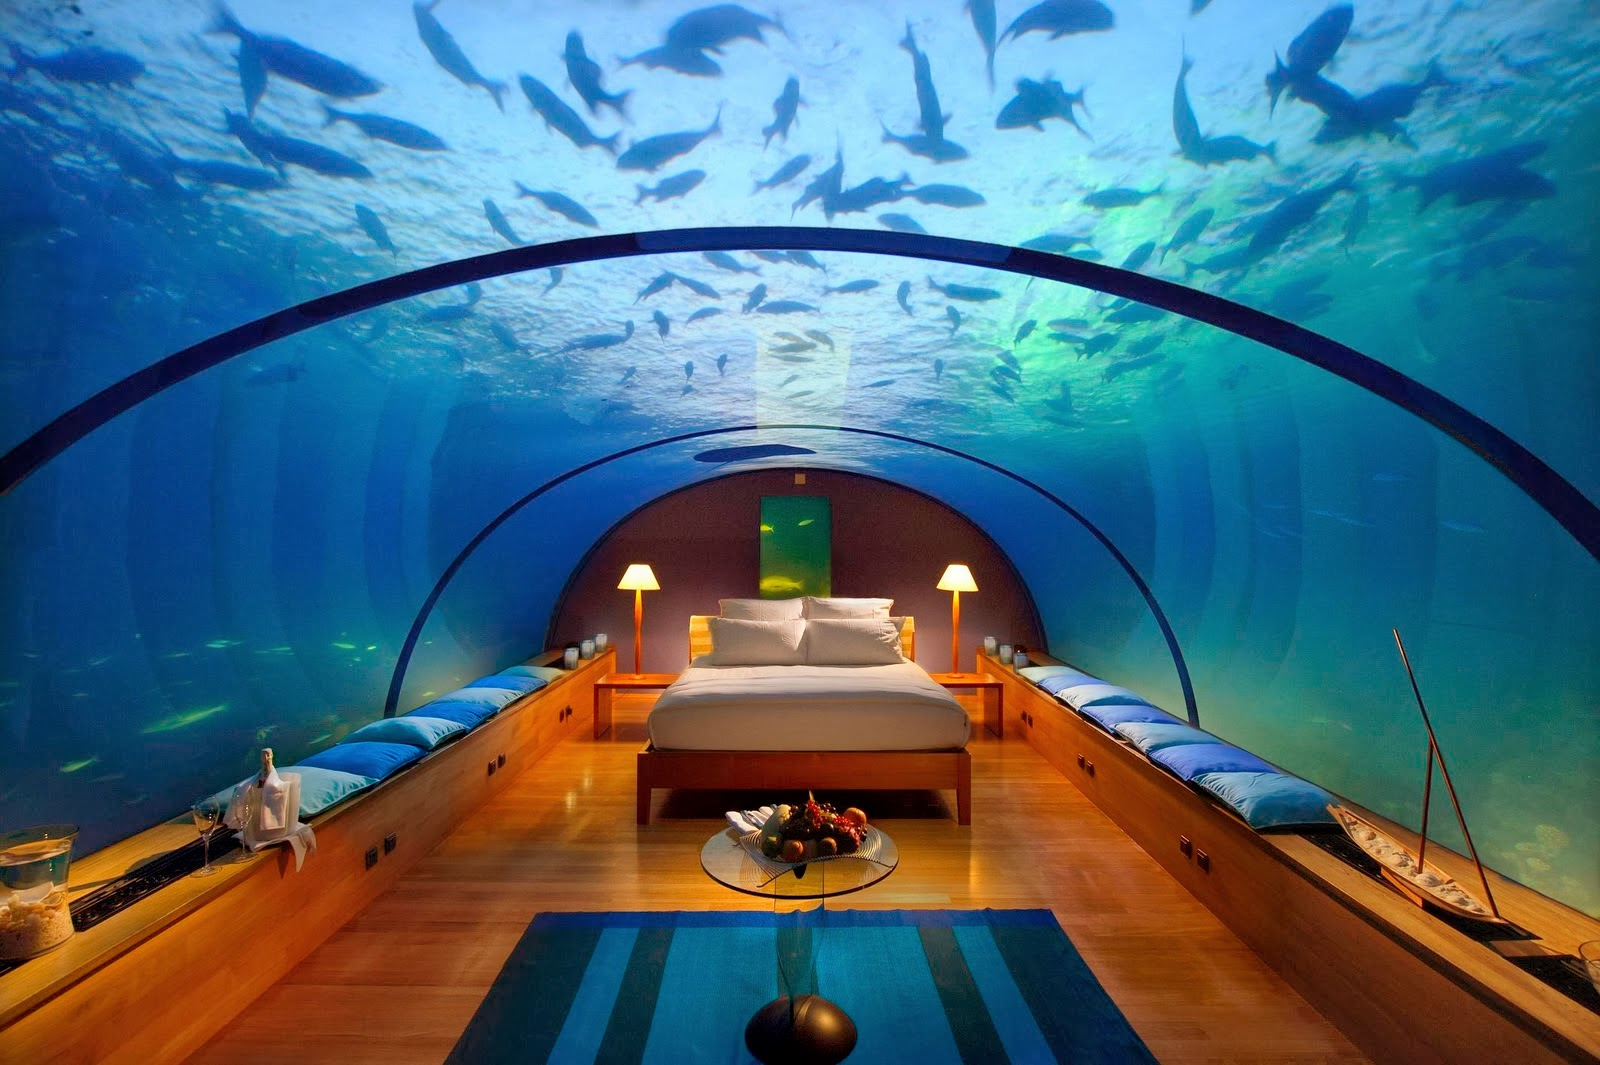 the hilton resort in maldives is one of the best honeymoon places